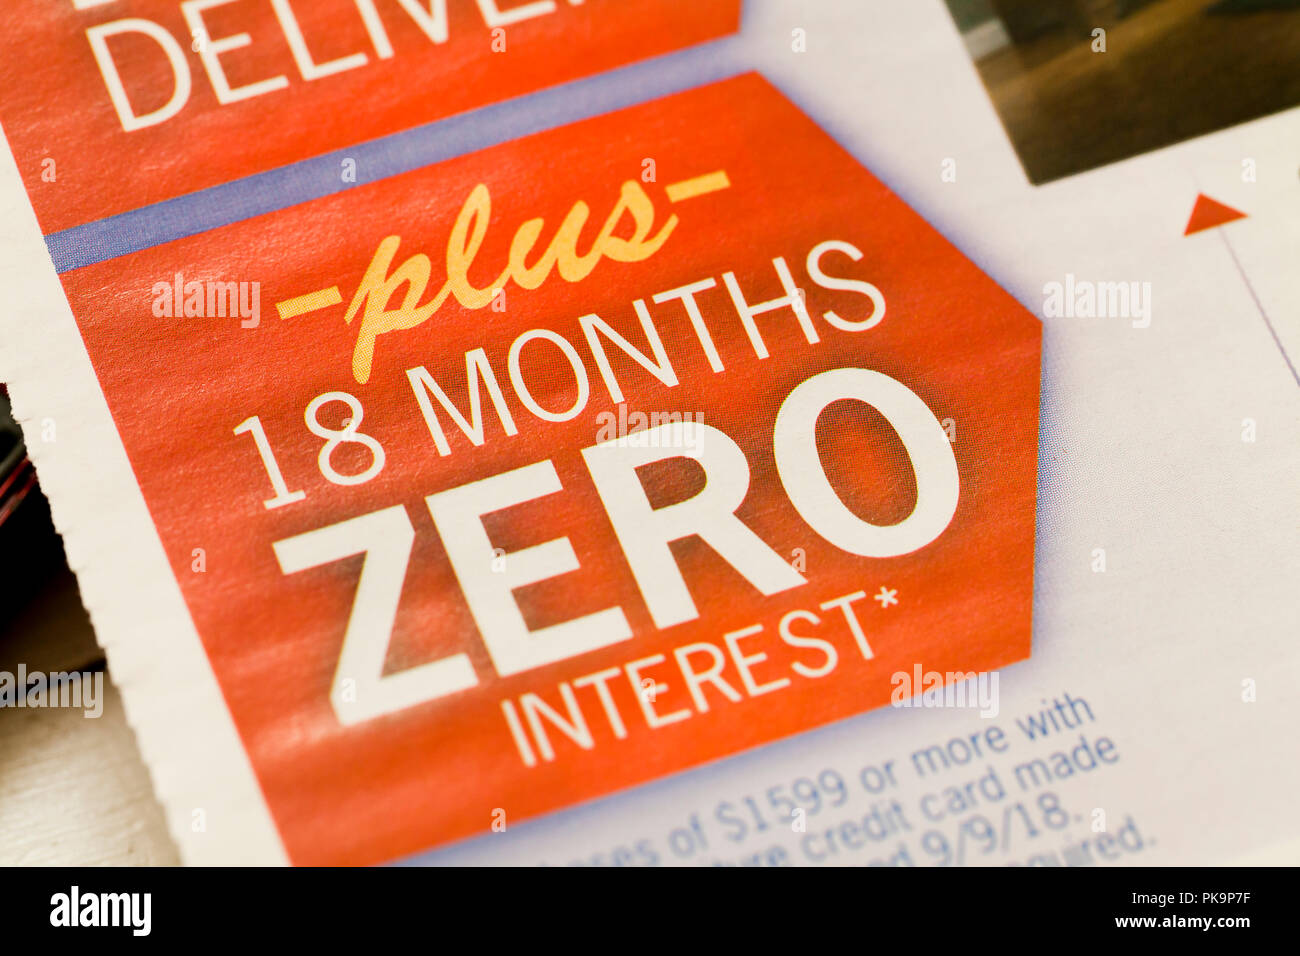 '18 Months Zero Interest' message on print advertisement - USA - Stock Image